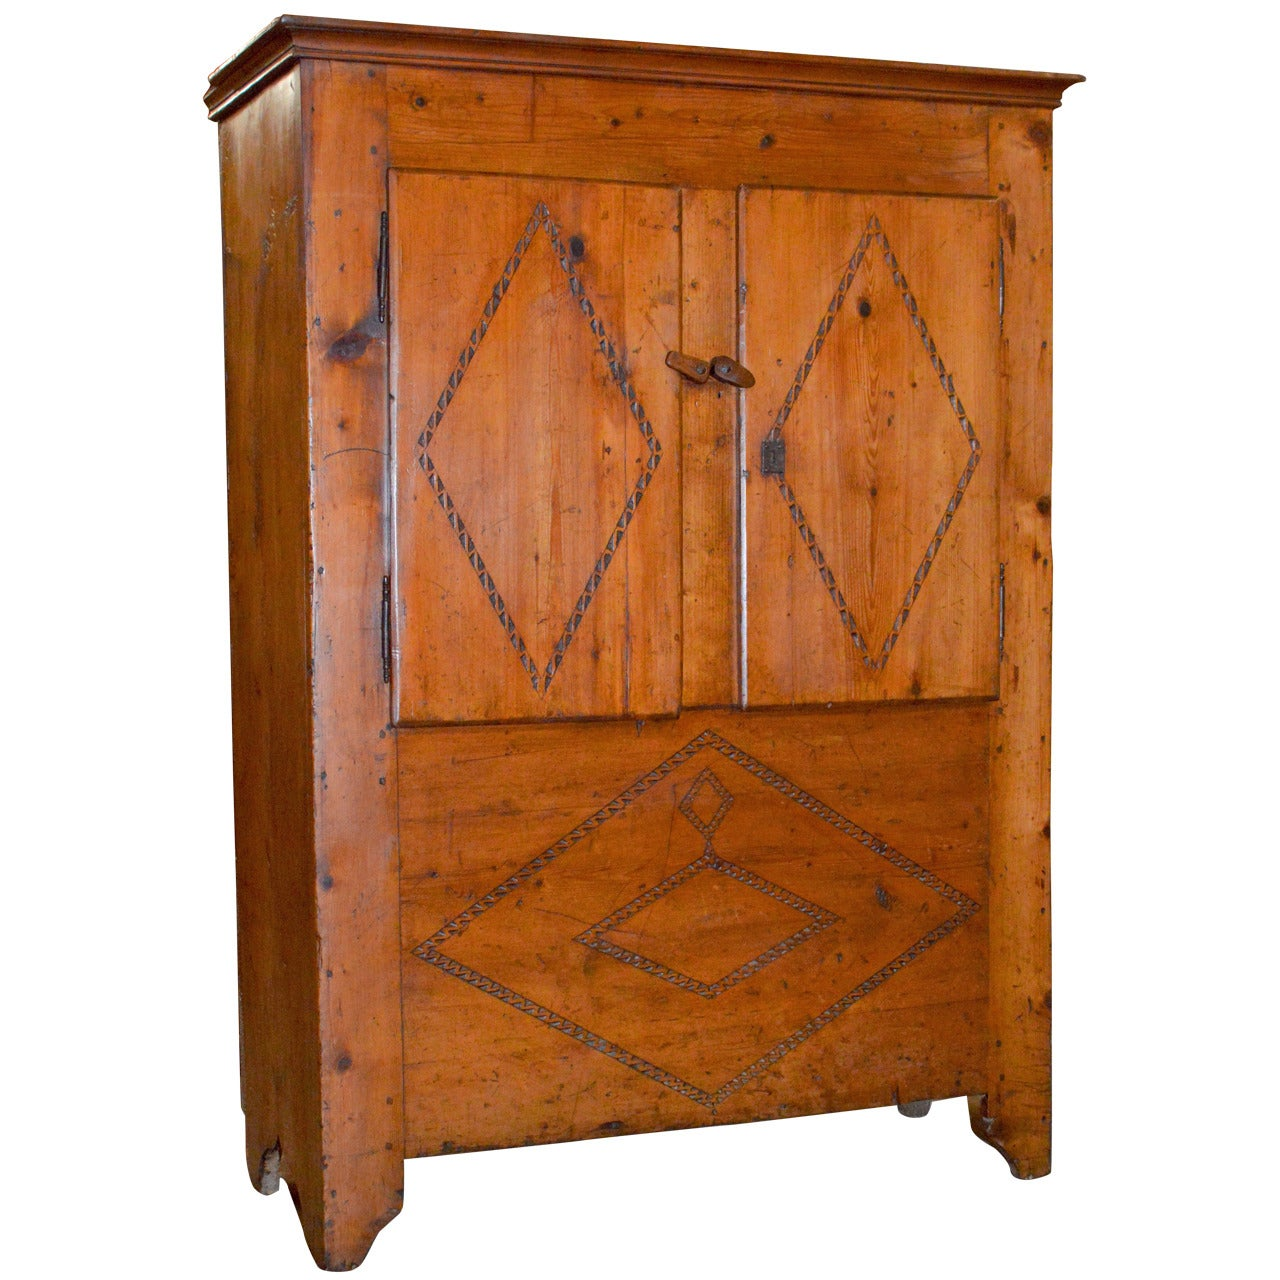 18th Century French Country Cabinet